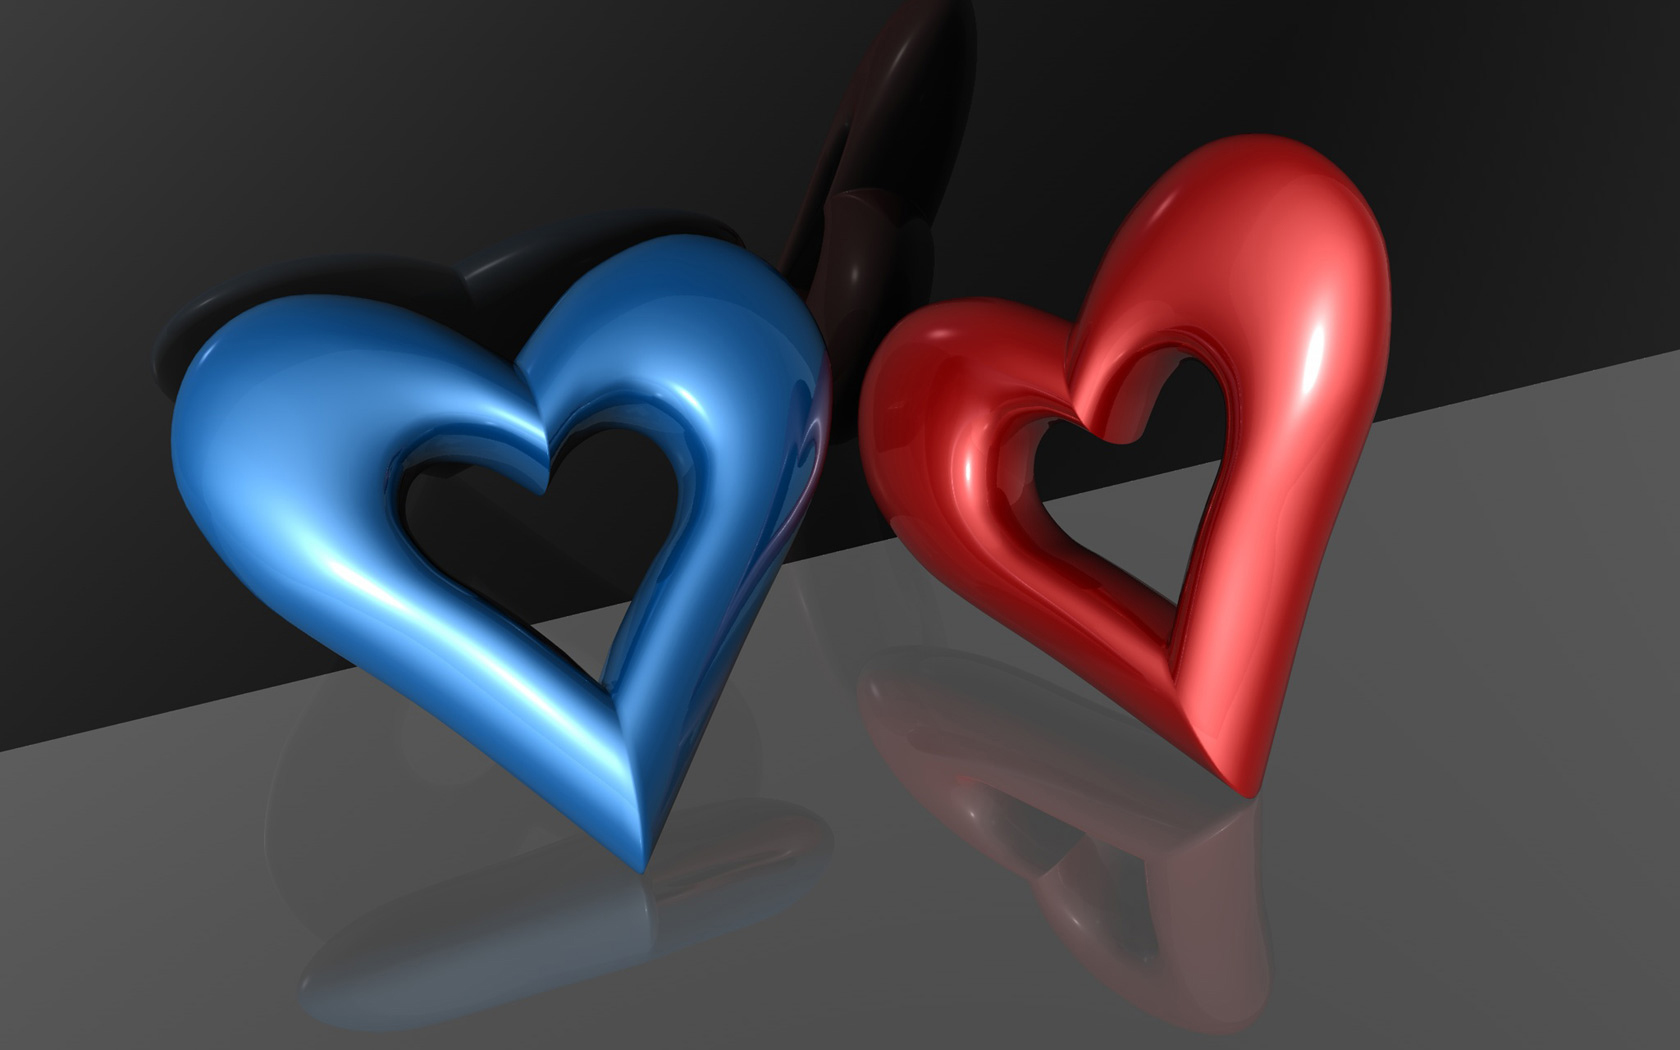 40 Breathtaking Heart Shaped Wallpapers   DesignCoral Blue and Red 3D Heart Wallpaper